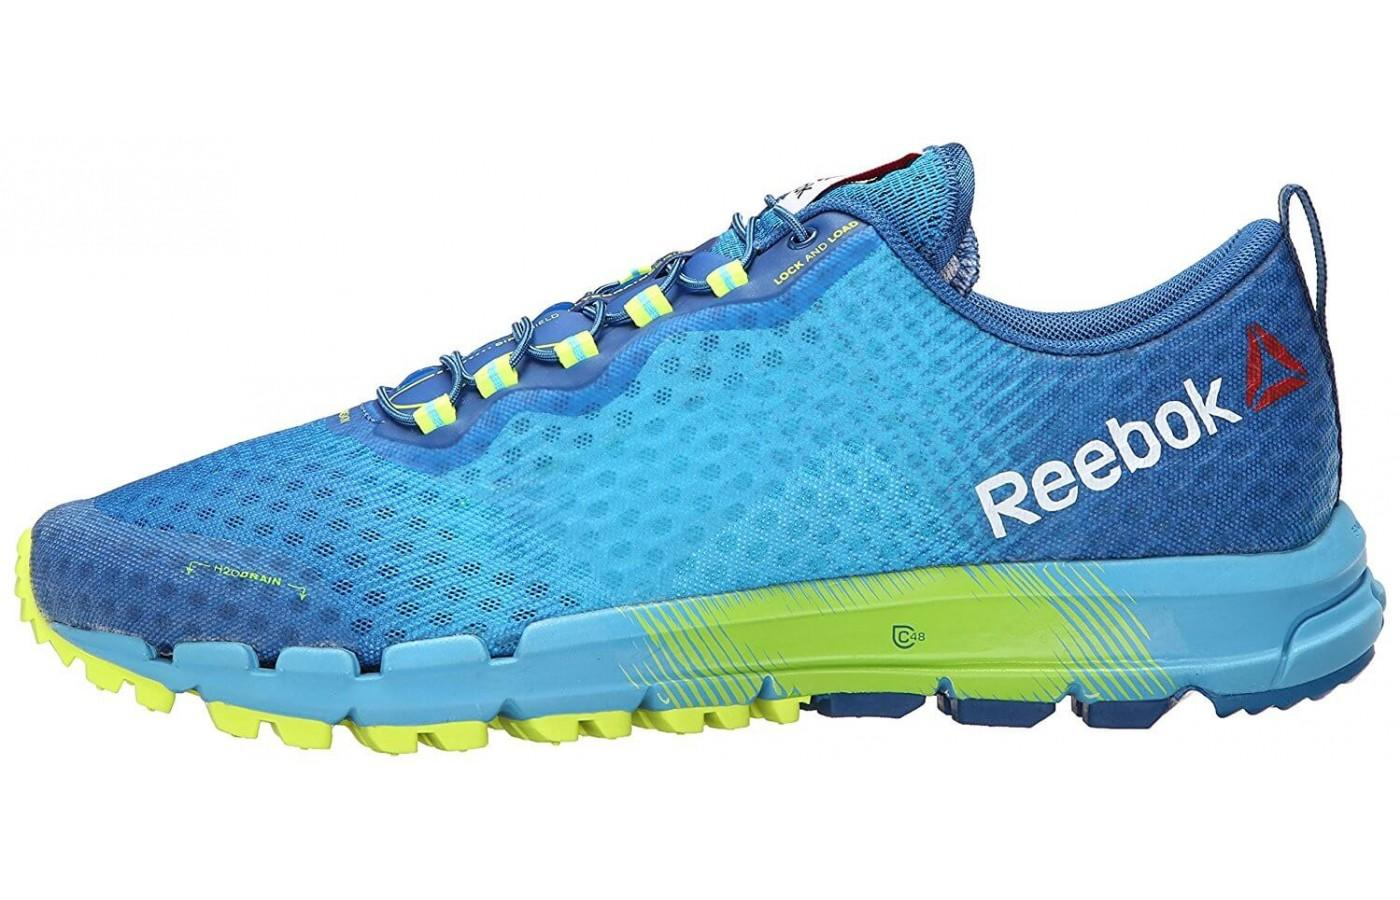 The Reebok All Terrain Thunder 2.0 Sideview with Logo